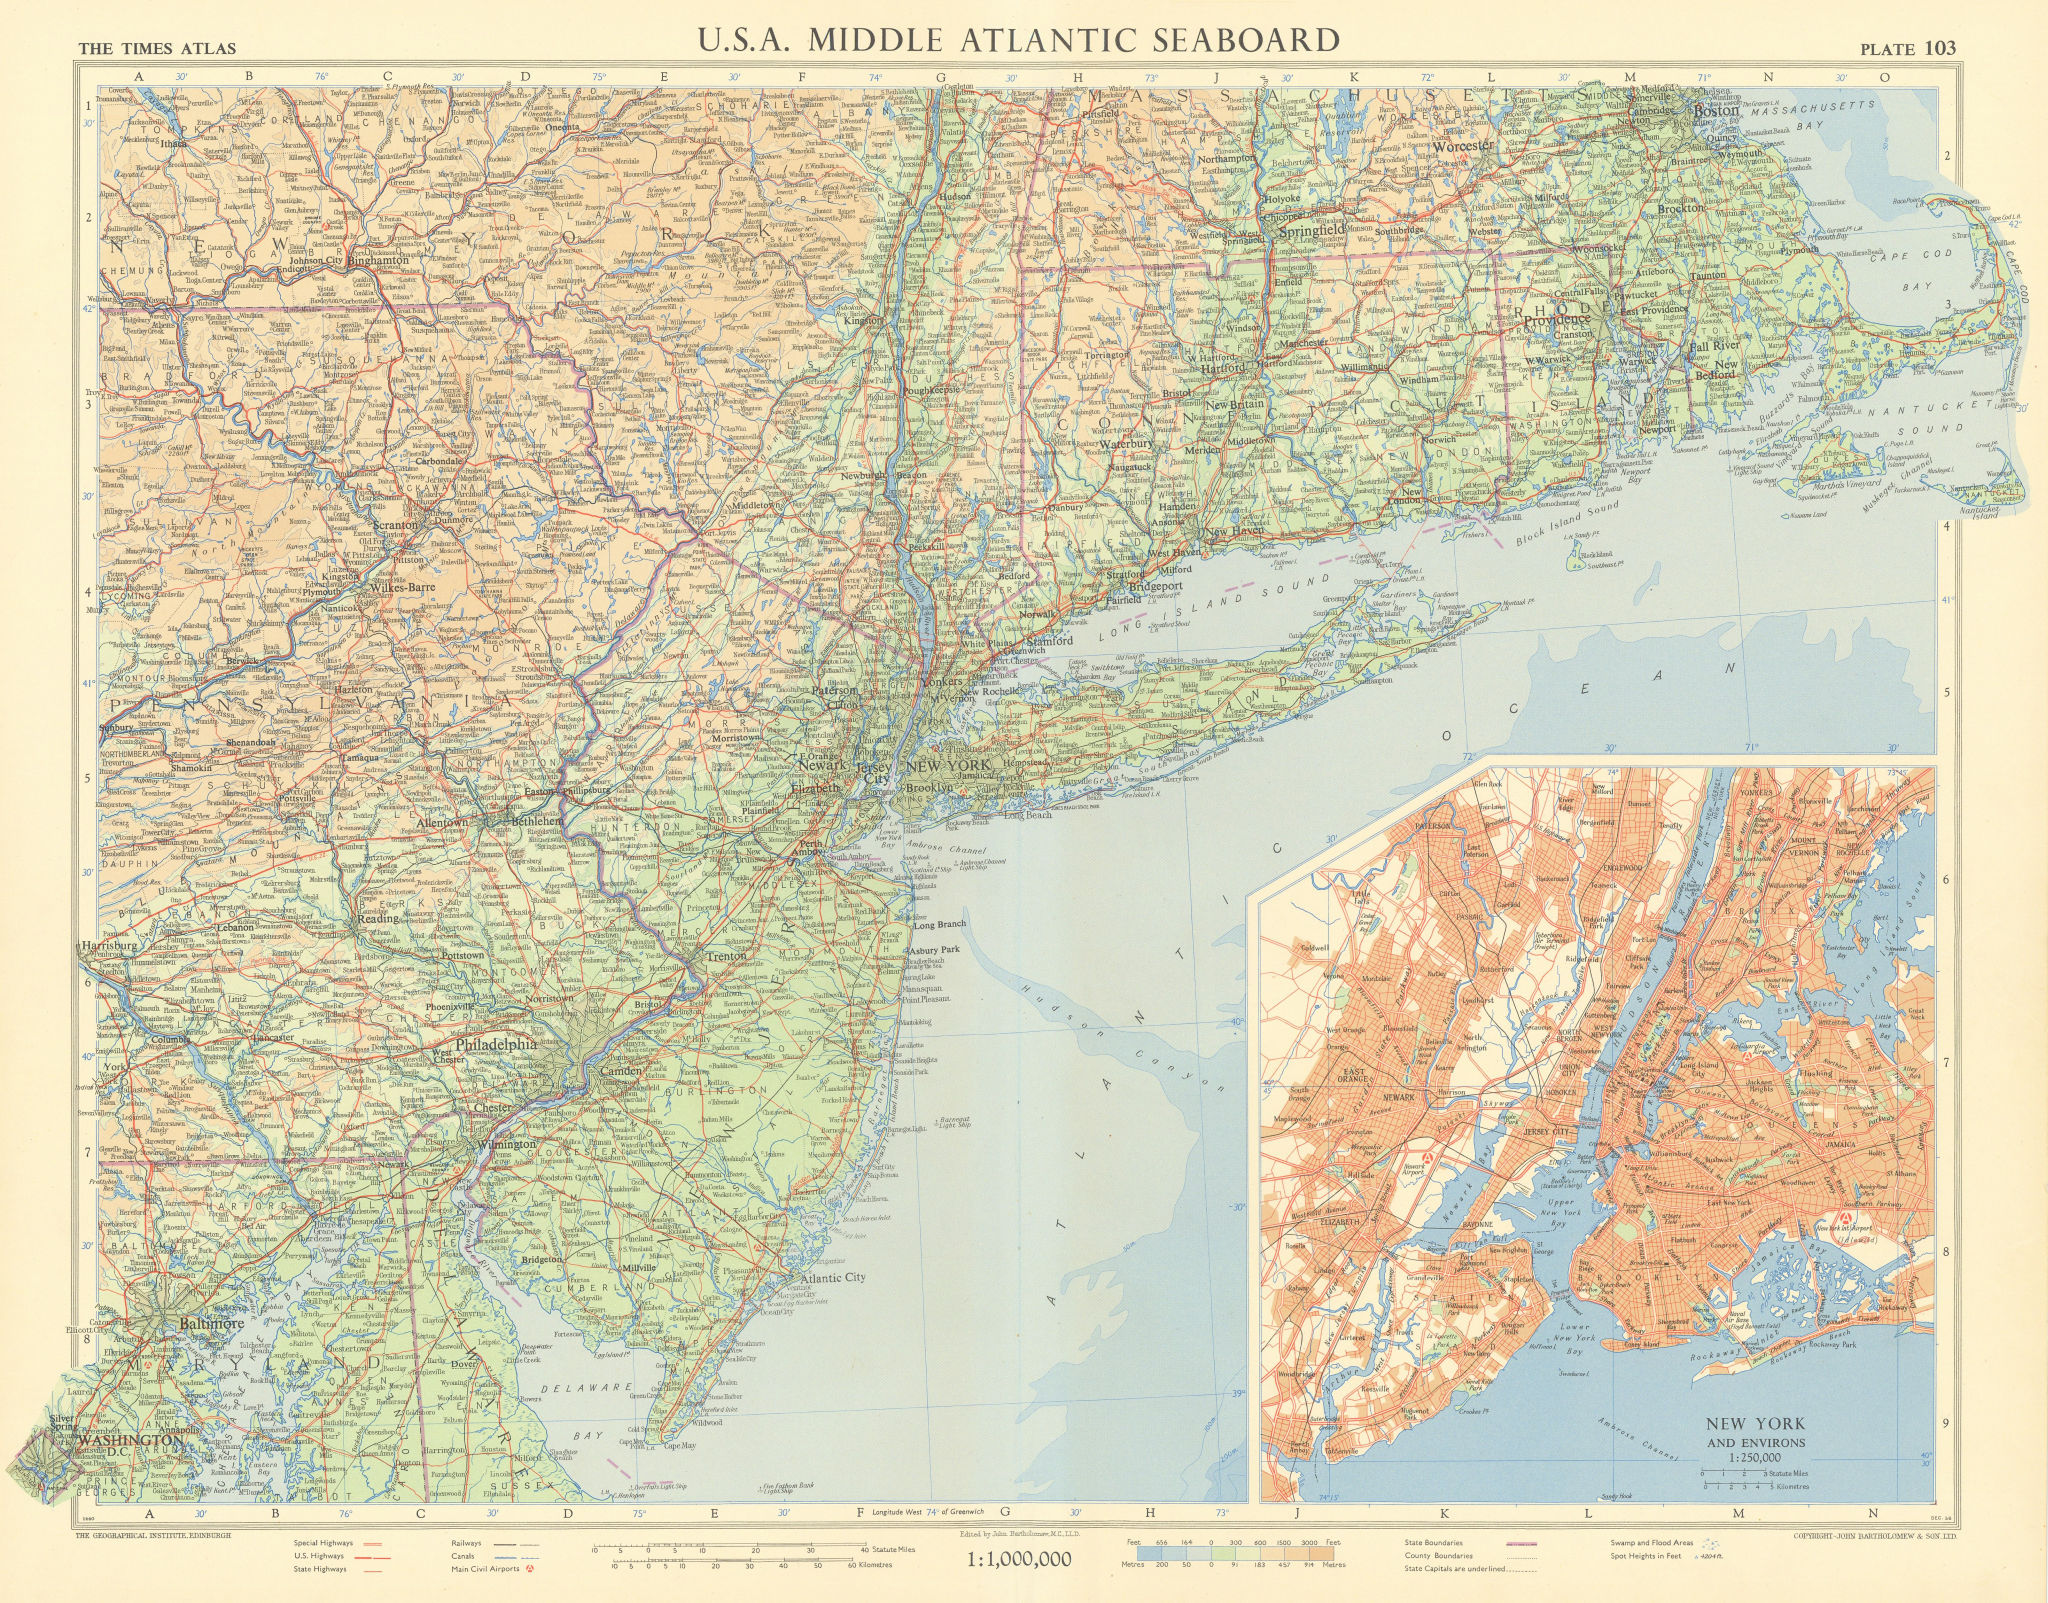 USA Middle Atlantic seaboard. New York City. New England. TIMES 1957 old map